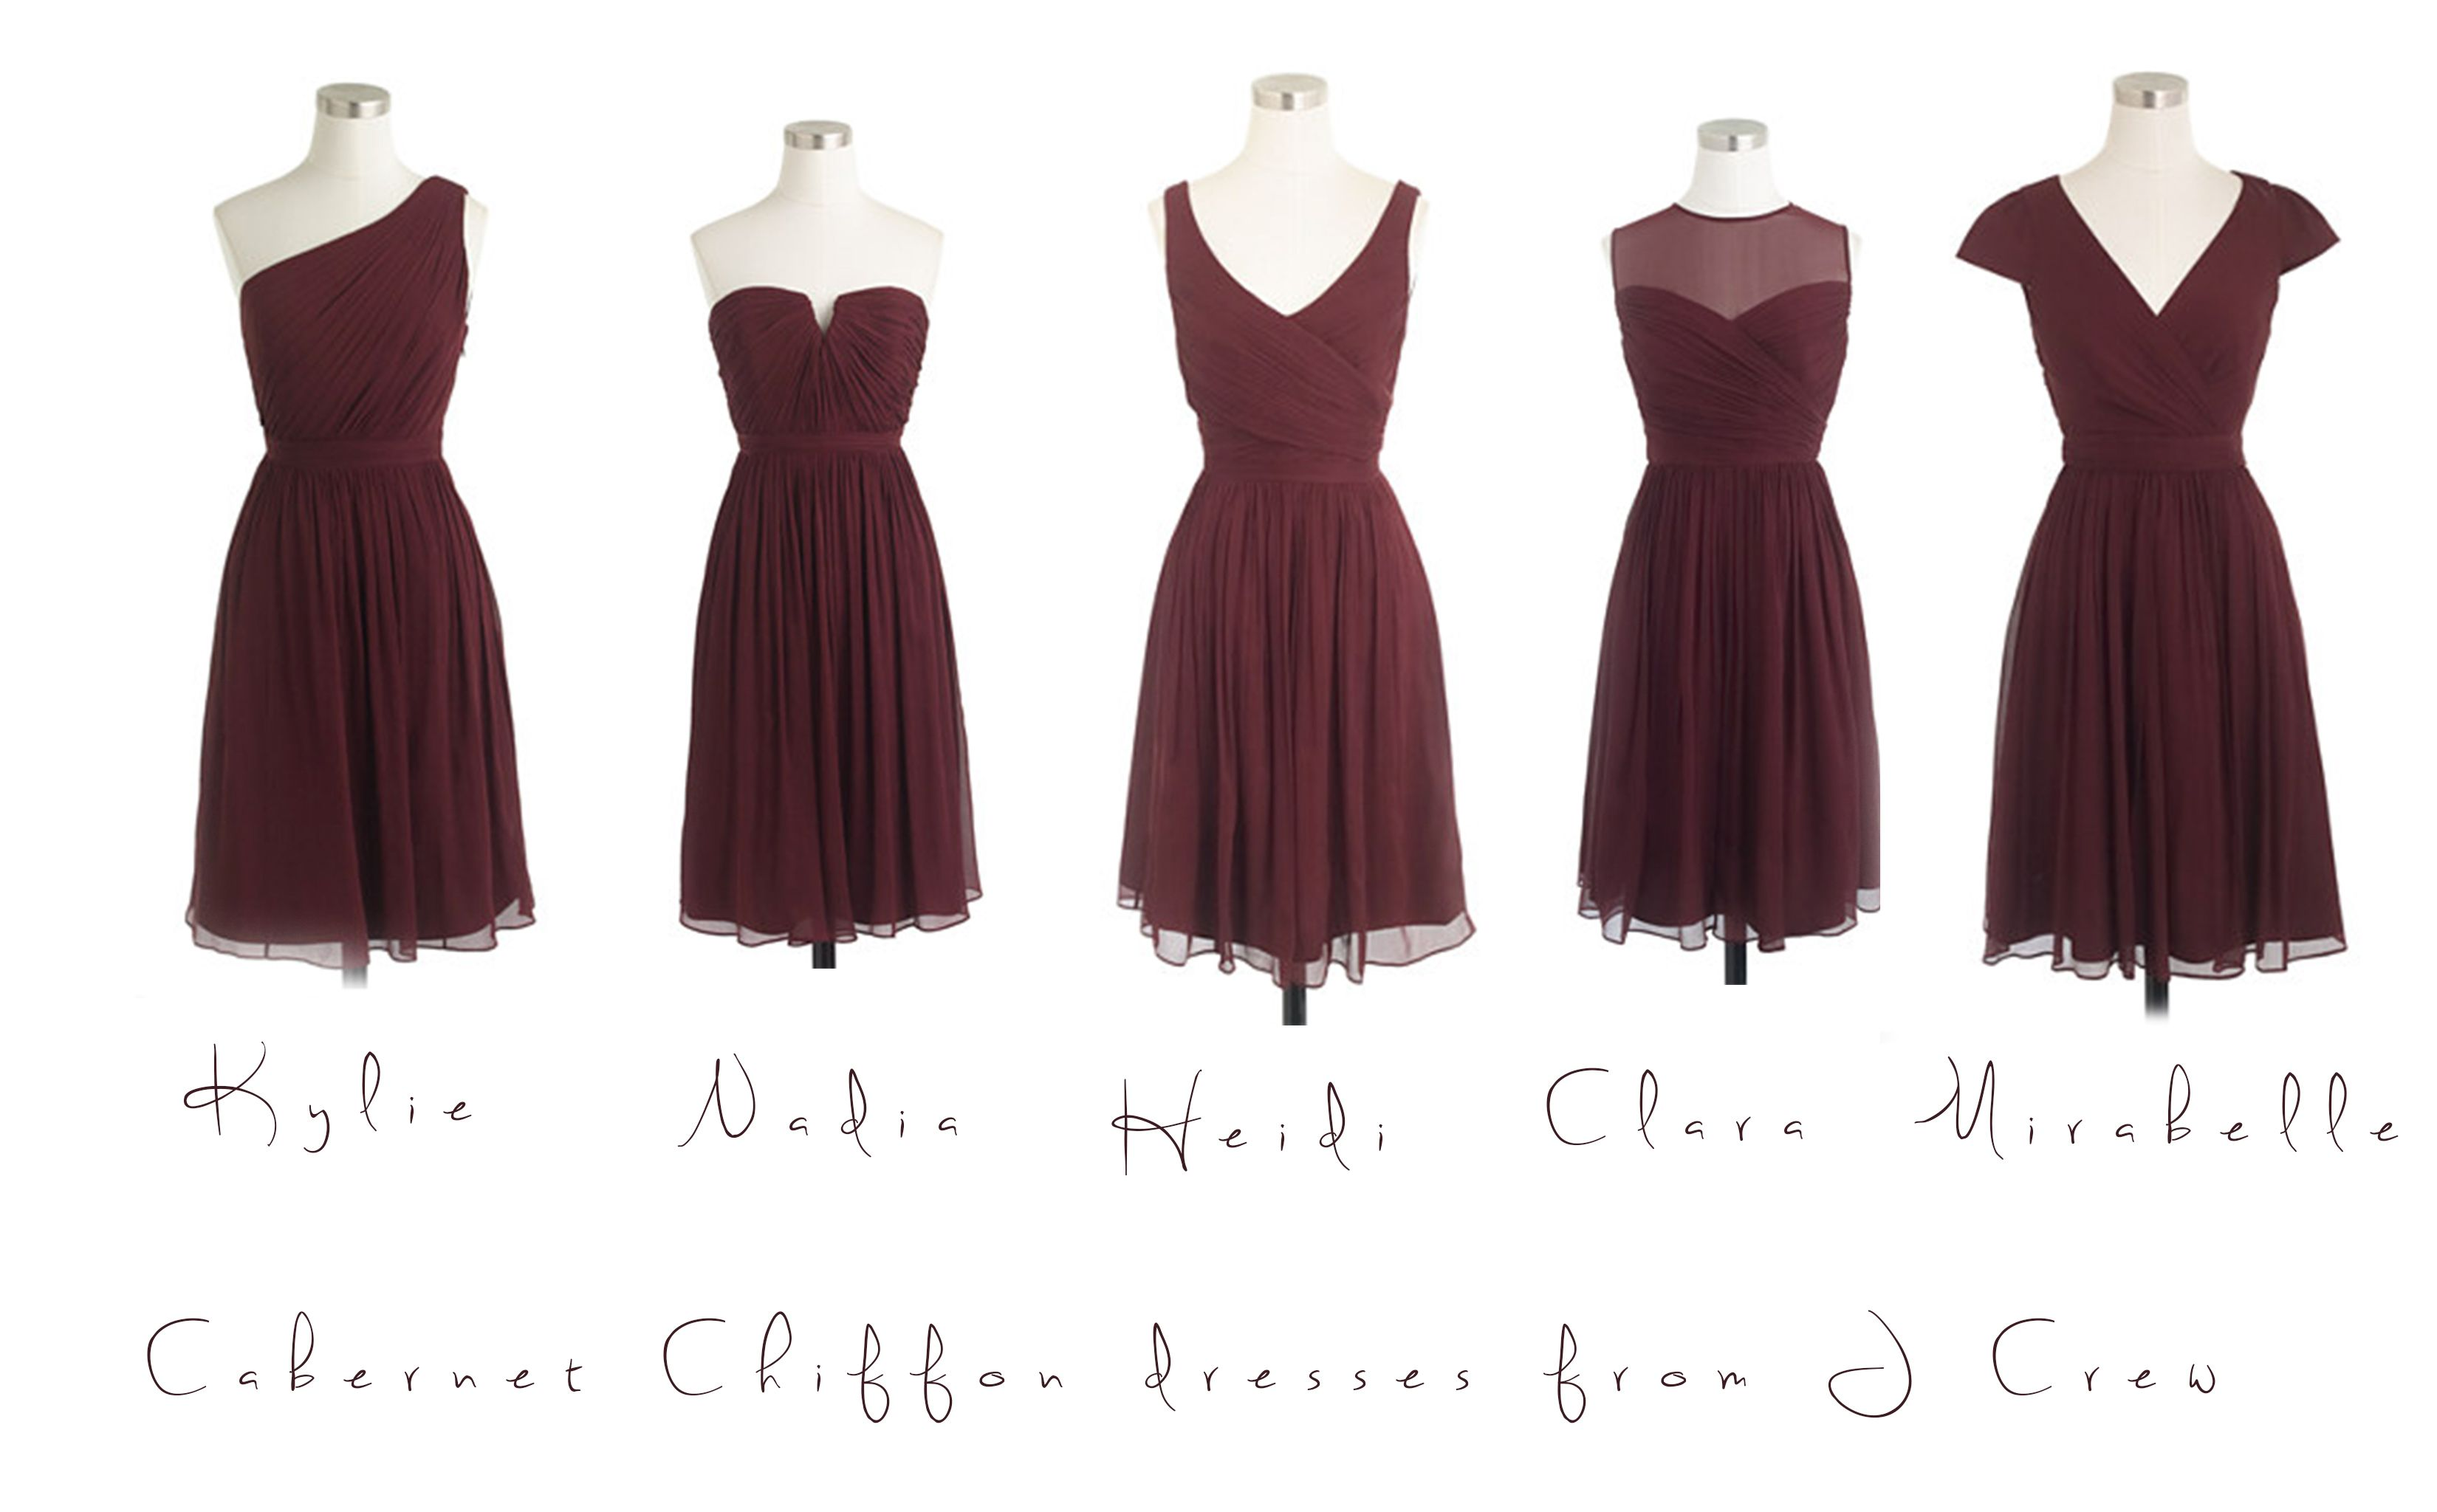 Really love these cabernet chiffon bridesmaids dresses from j crew really love these cabernet chiffon bridesmaids dresses from j crew love the mismatched styles ombrellifo Choice Image